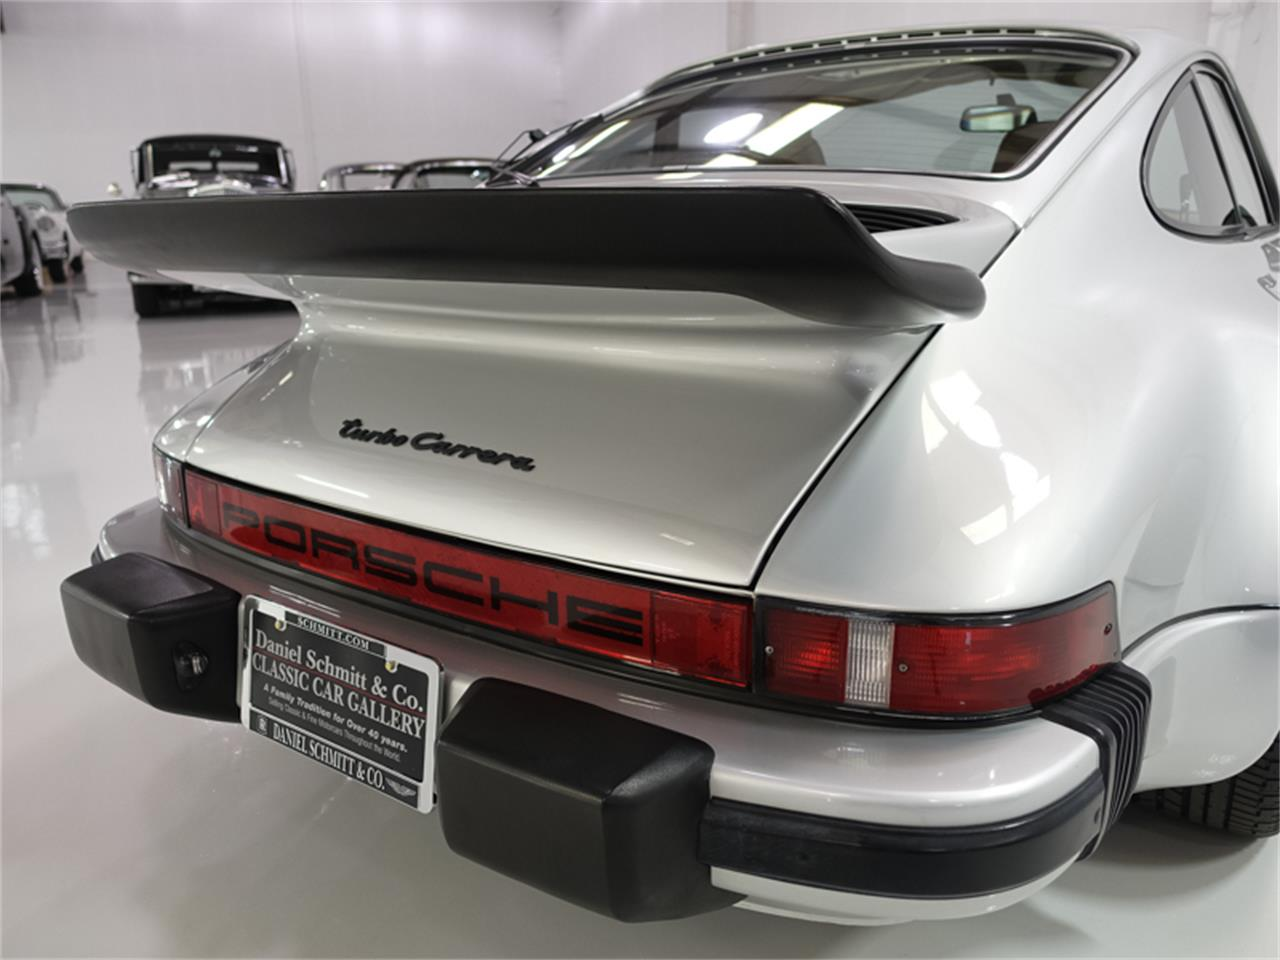 Large Picture of 1976 930 Turbo located in St Ann Missouri Offered by Daniel Schmitt & Co. - FXKC